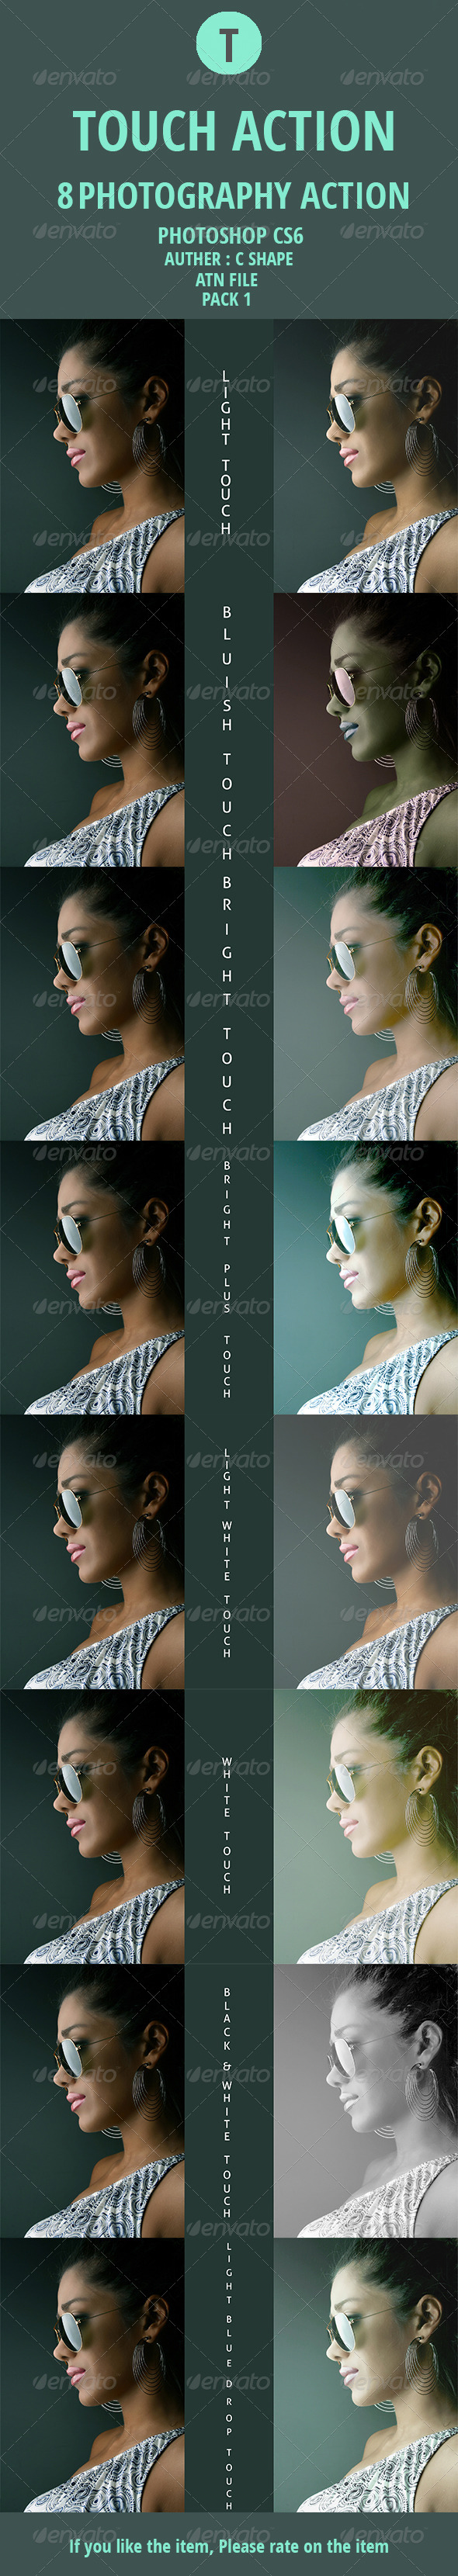 GraphicRiver Touch Photography Action 0.1 7857250